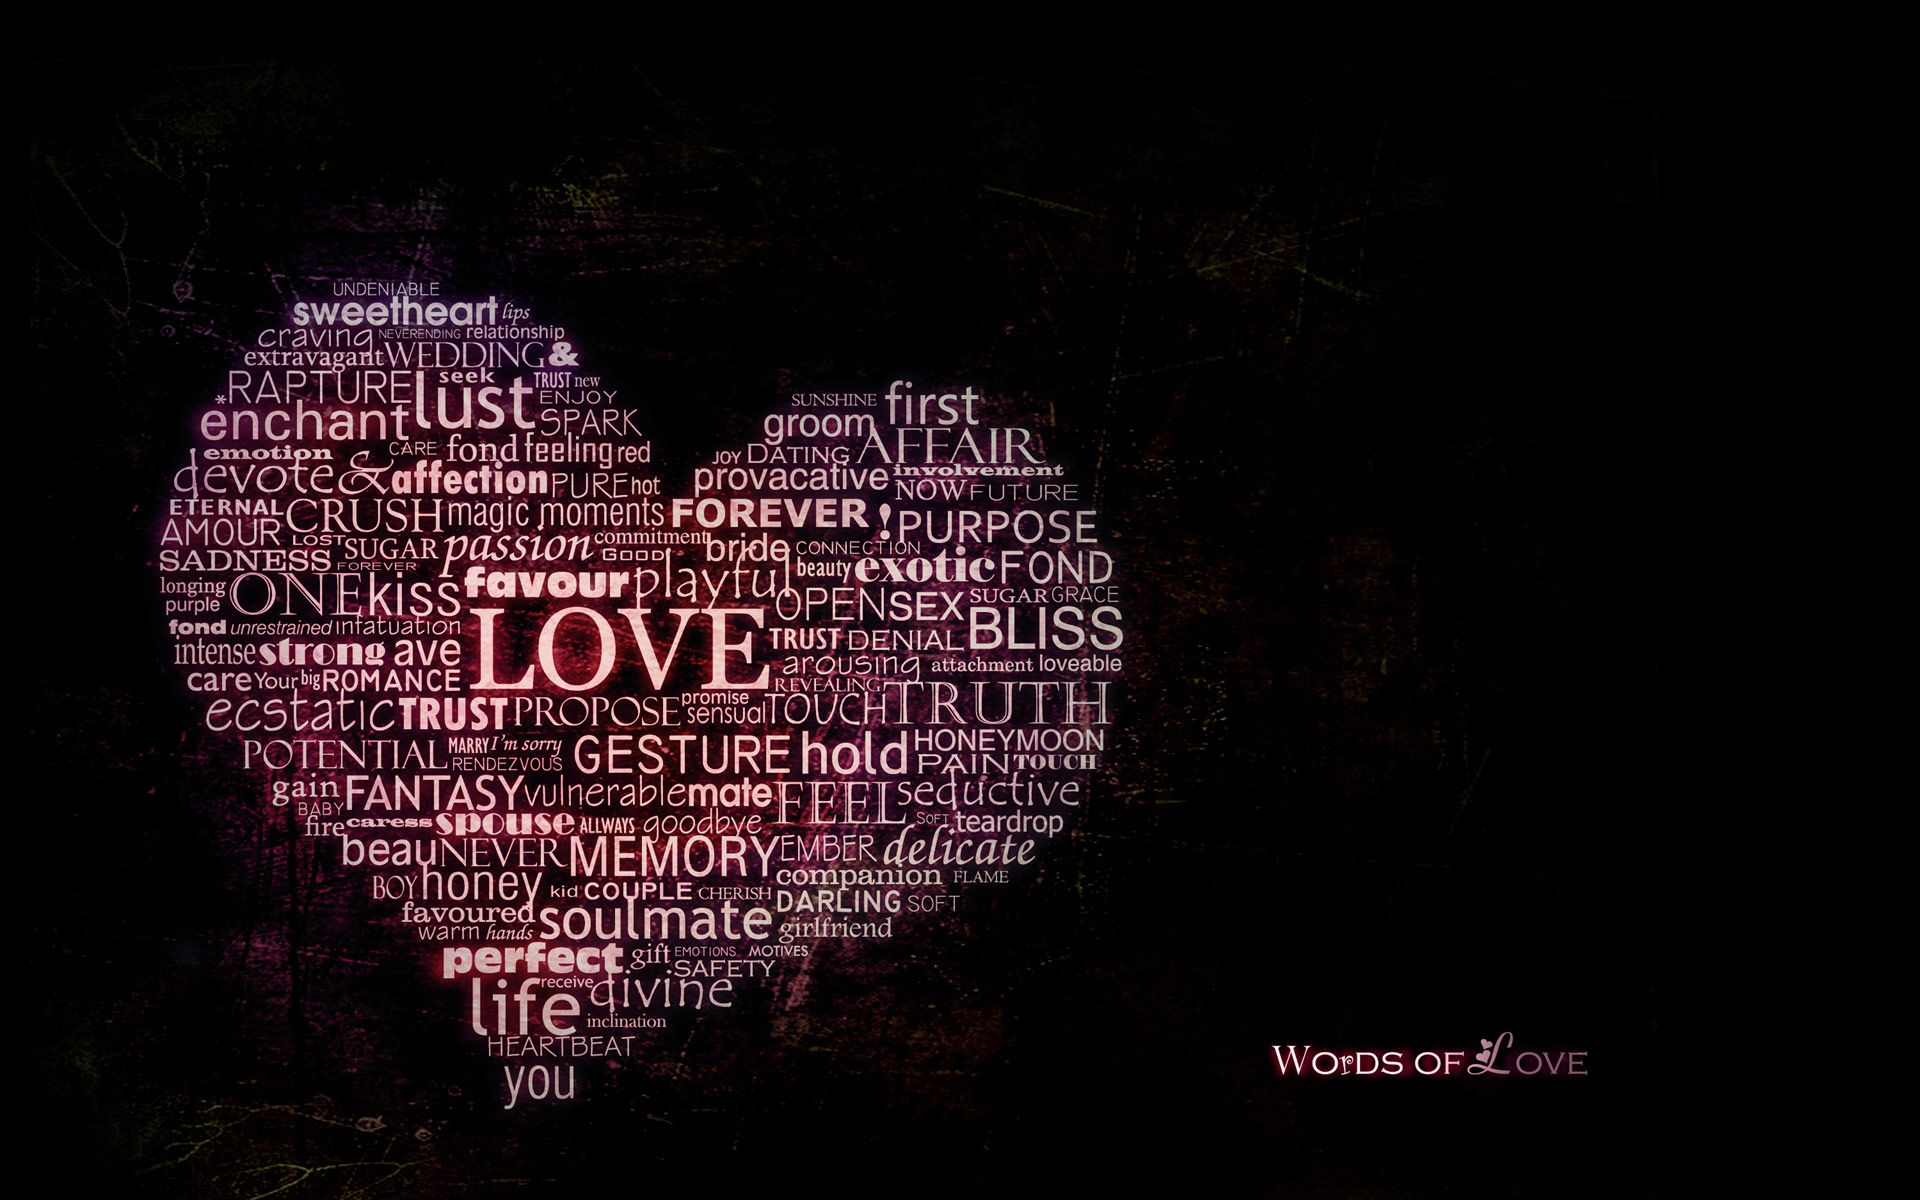 love quotes widescreen hd wallpapers 3209 inspiration bwalles com gallery